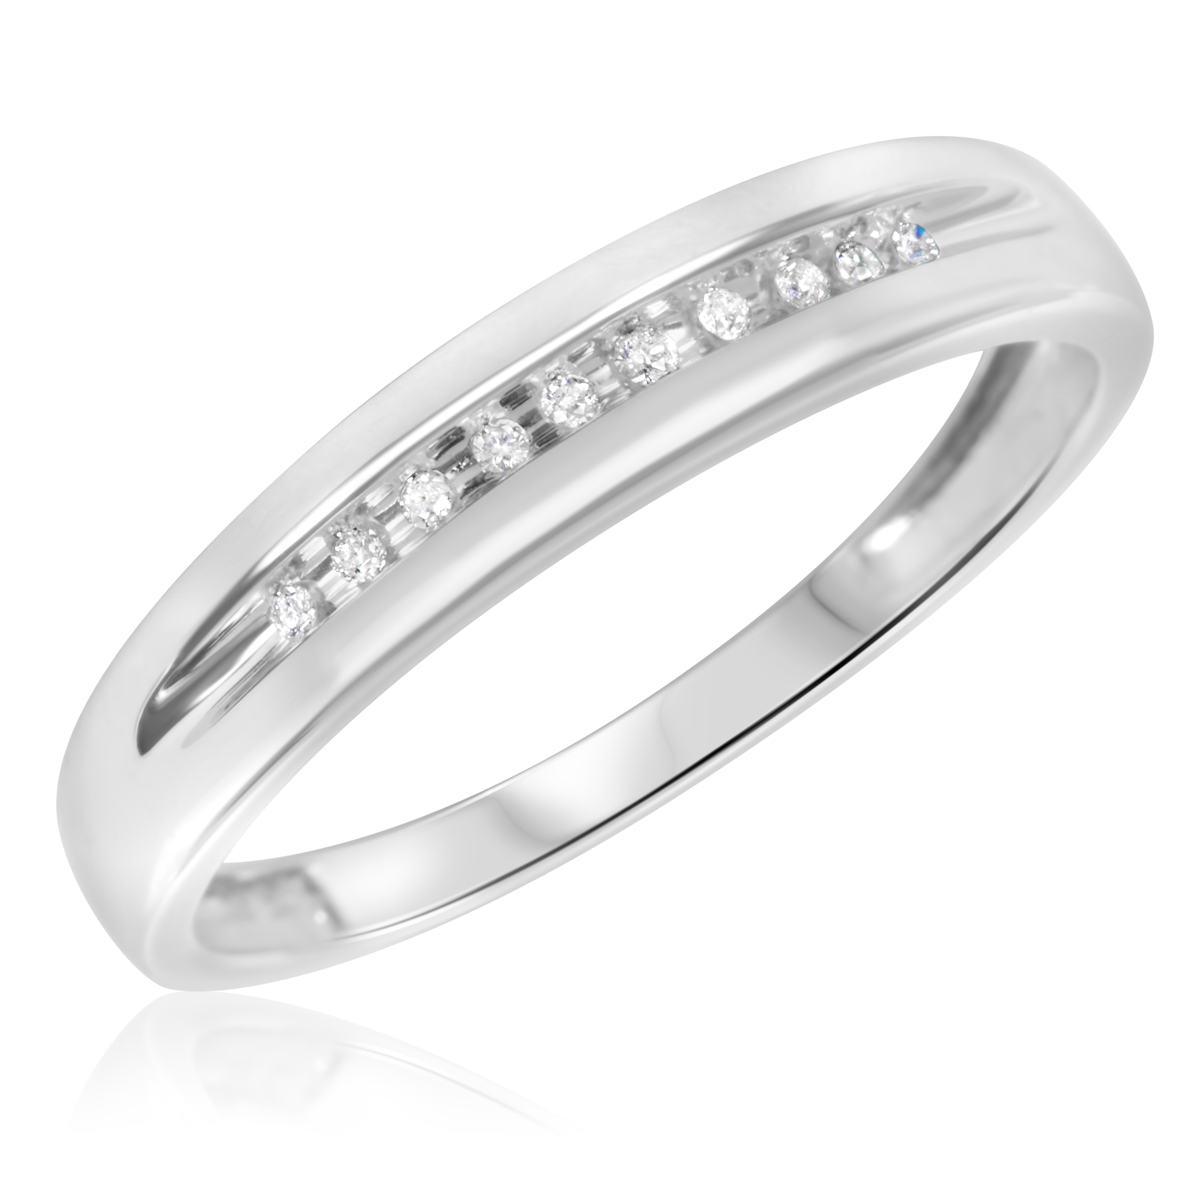 White Gold Bands: 1/15 CT. T.W. Diamond Men's Wedding Band 14K White Gold